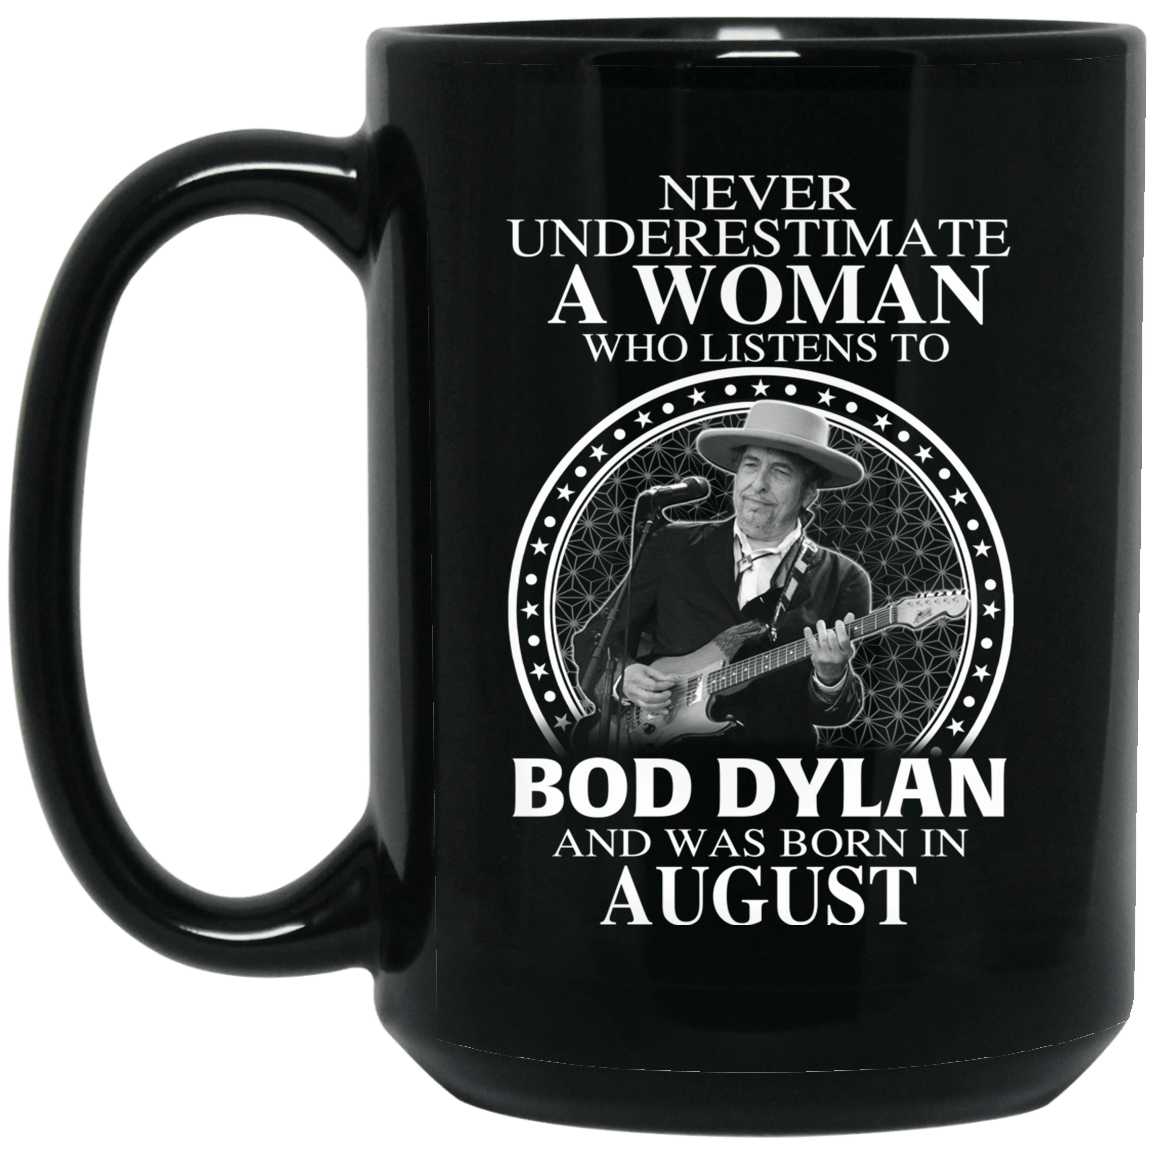 A Woman Who Listens To Bob Dylan And Was Born In August Mug 1066-10182-76154532-49311 - Tee Ript